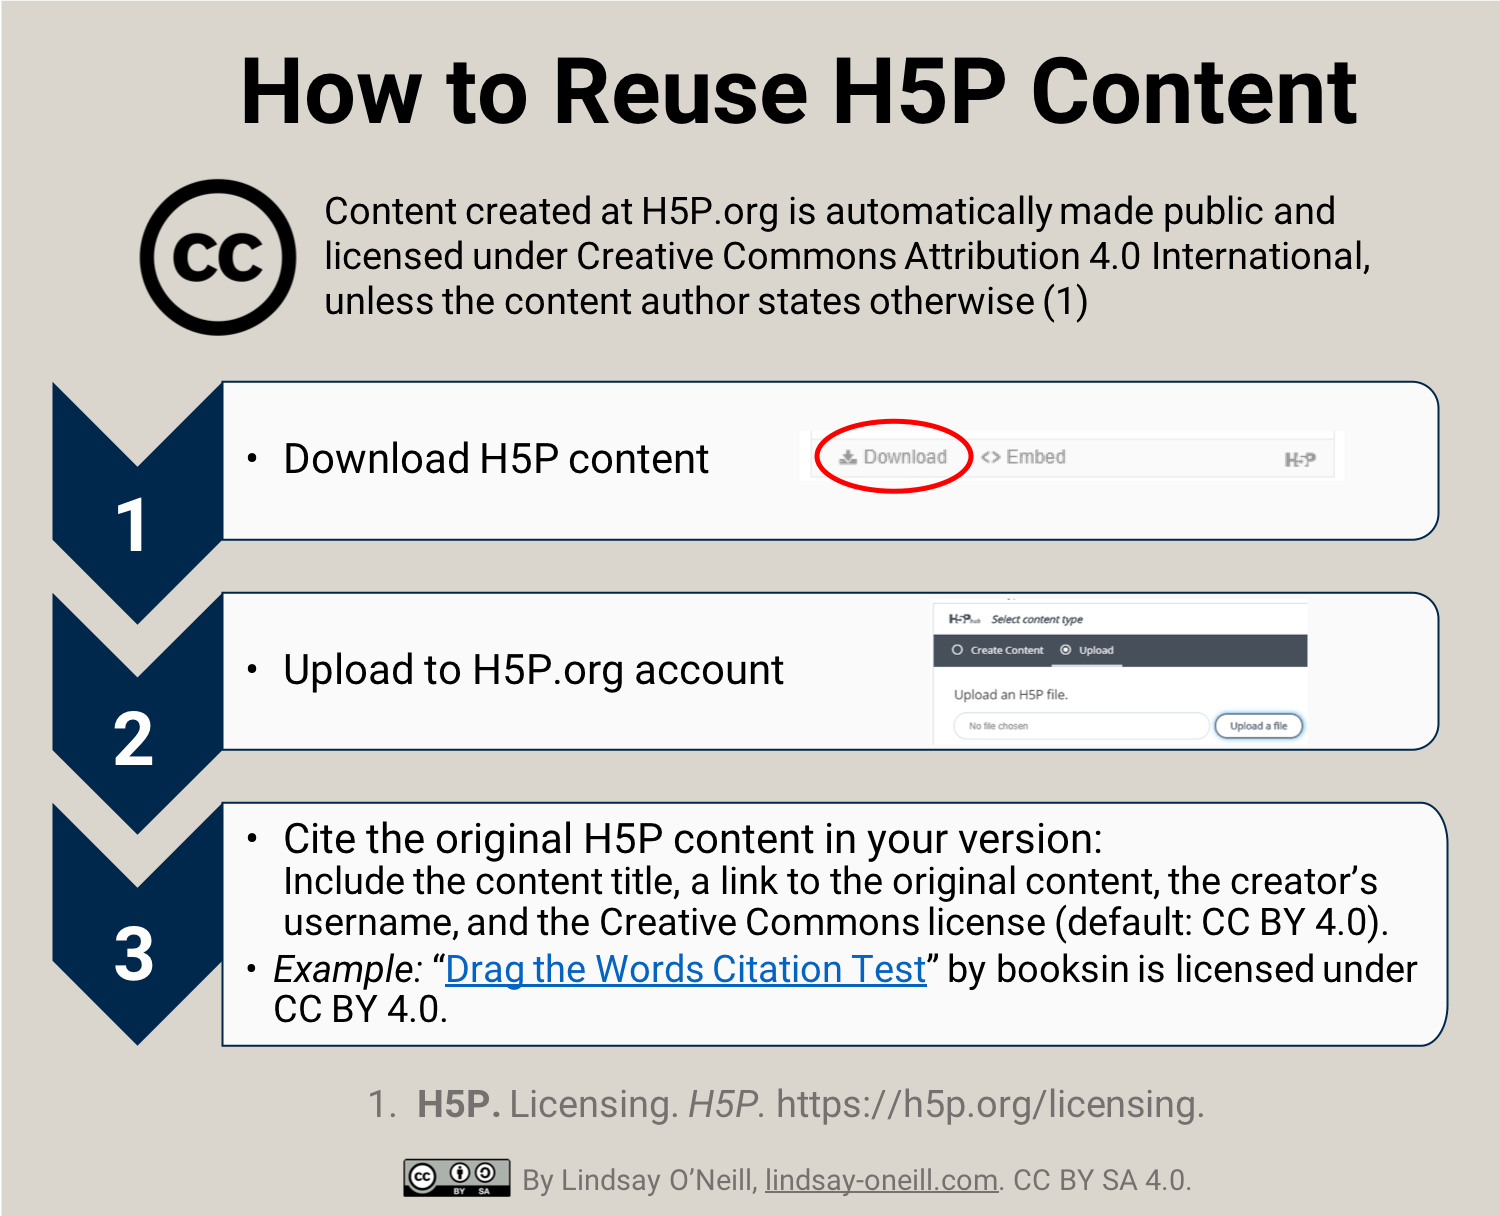 ALA Poster Teaser Infographic: How to Reuse H5P Content